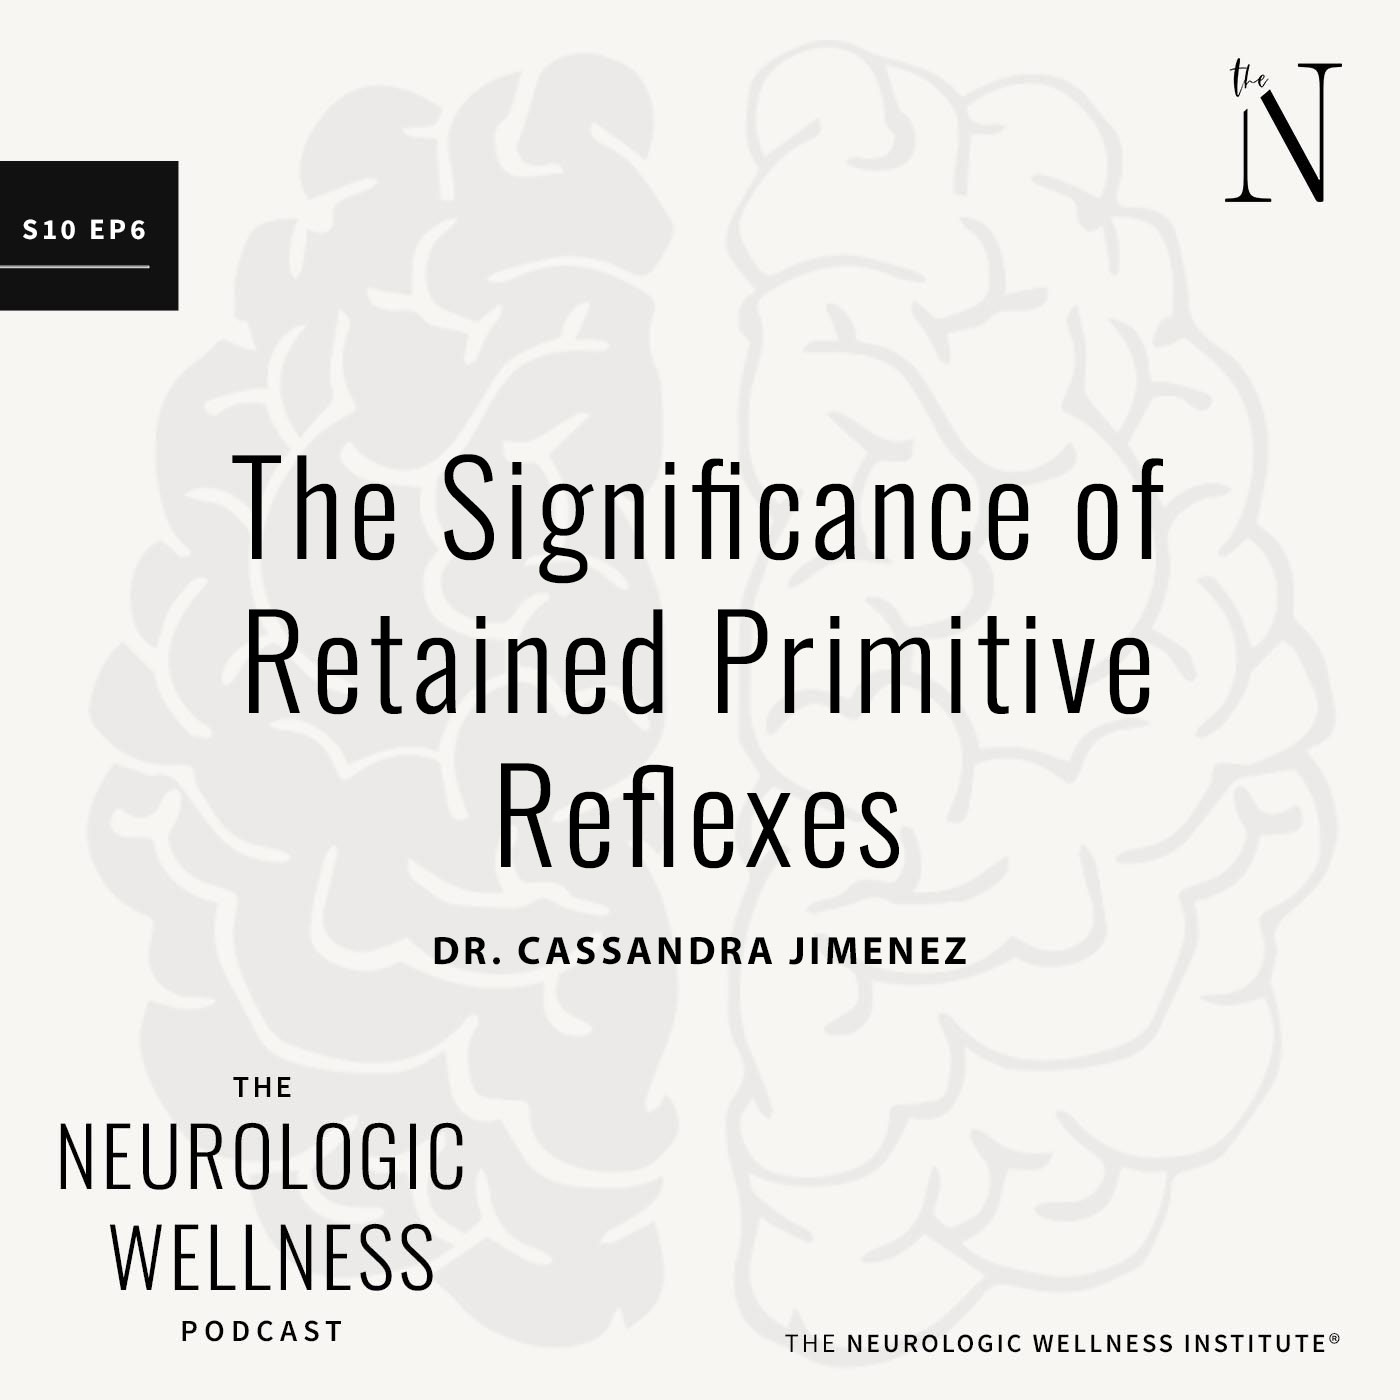 The Significance of Retained Primitive Reflexes